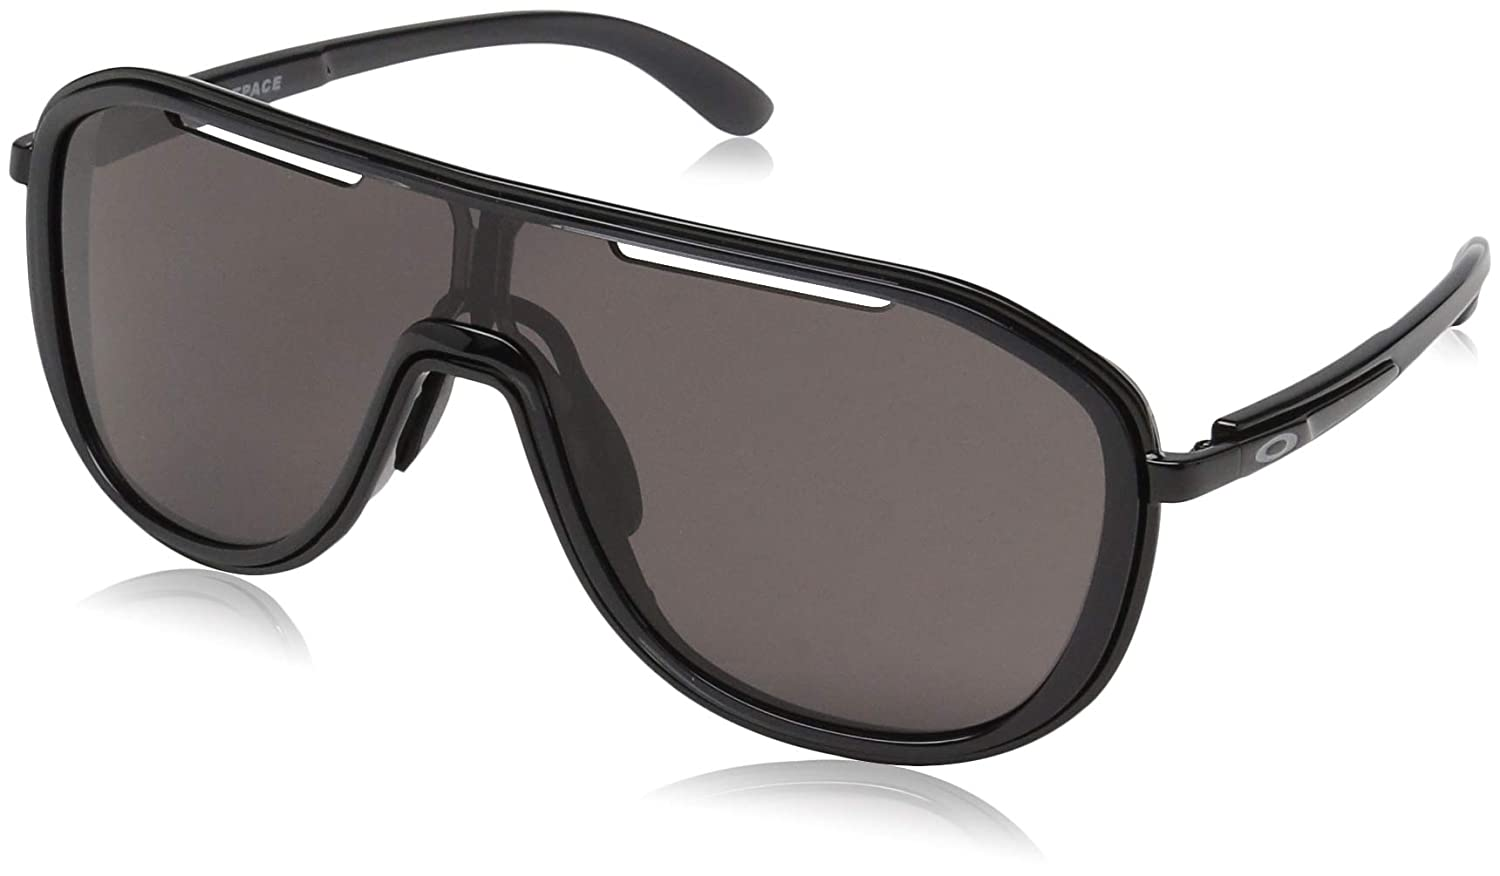 Ray-Ban Women's Outpace Sunglasses, Black (Negro), 1 0OO4133